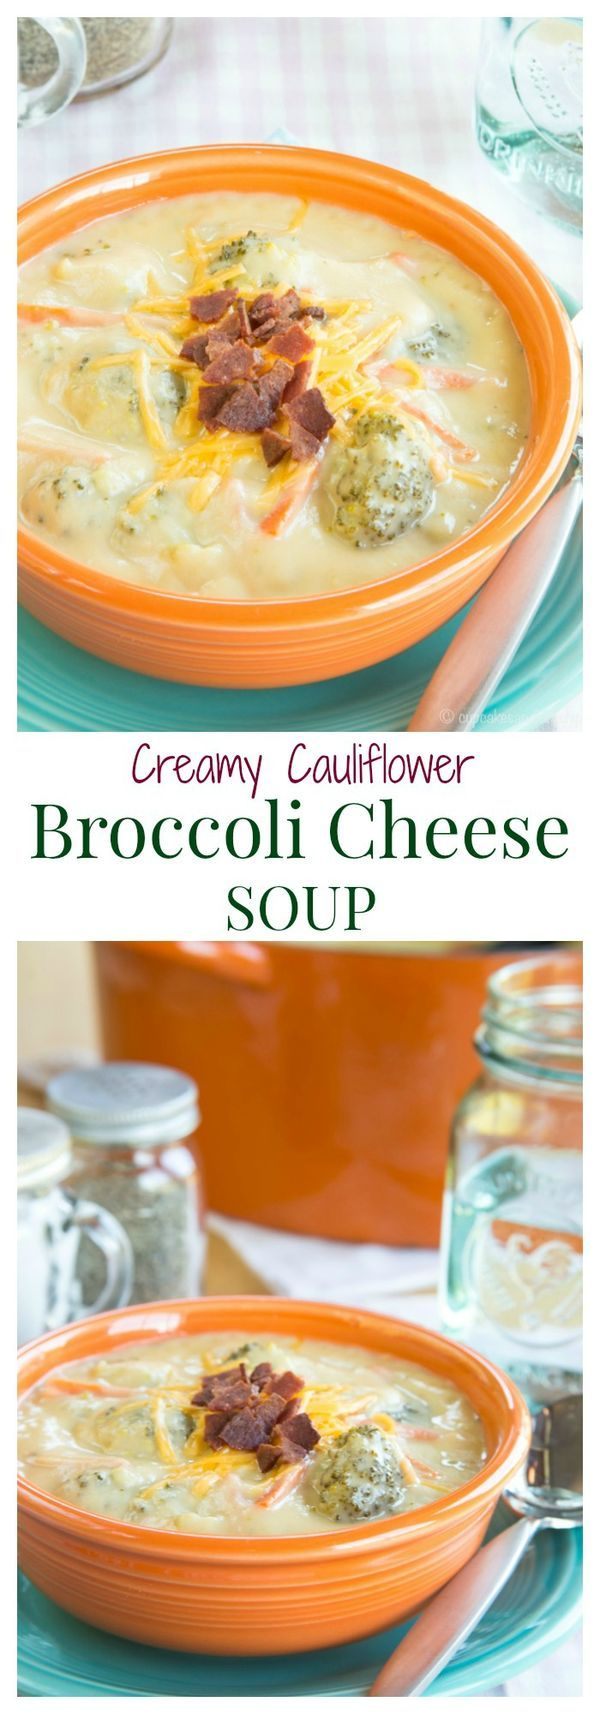 Creamy Cauliflower Broccoli Cheese Soup - a healthier and veggie-packed version of a favorite comfort food recipe.   cupcakesandkalechips.com   gluten free, low carb, vegetarian (without the bacon garnish)